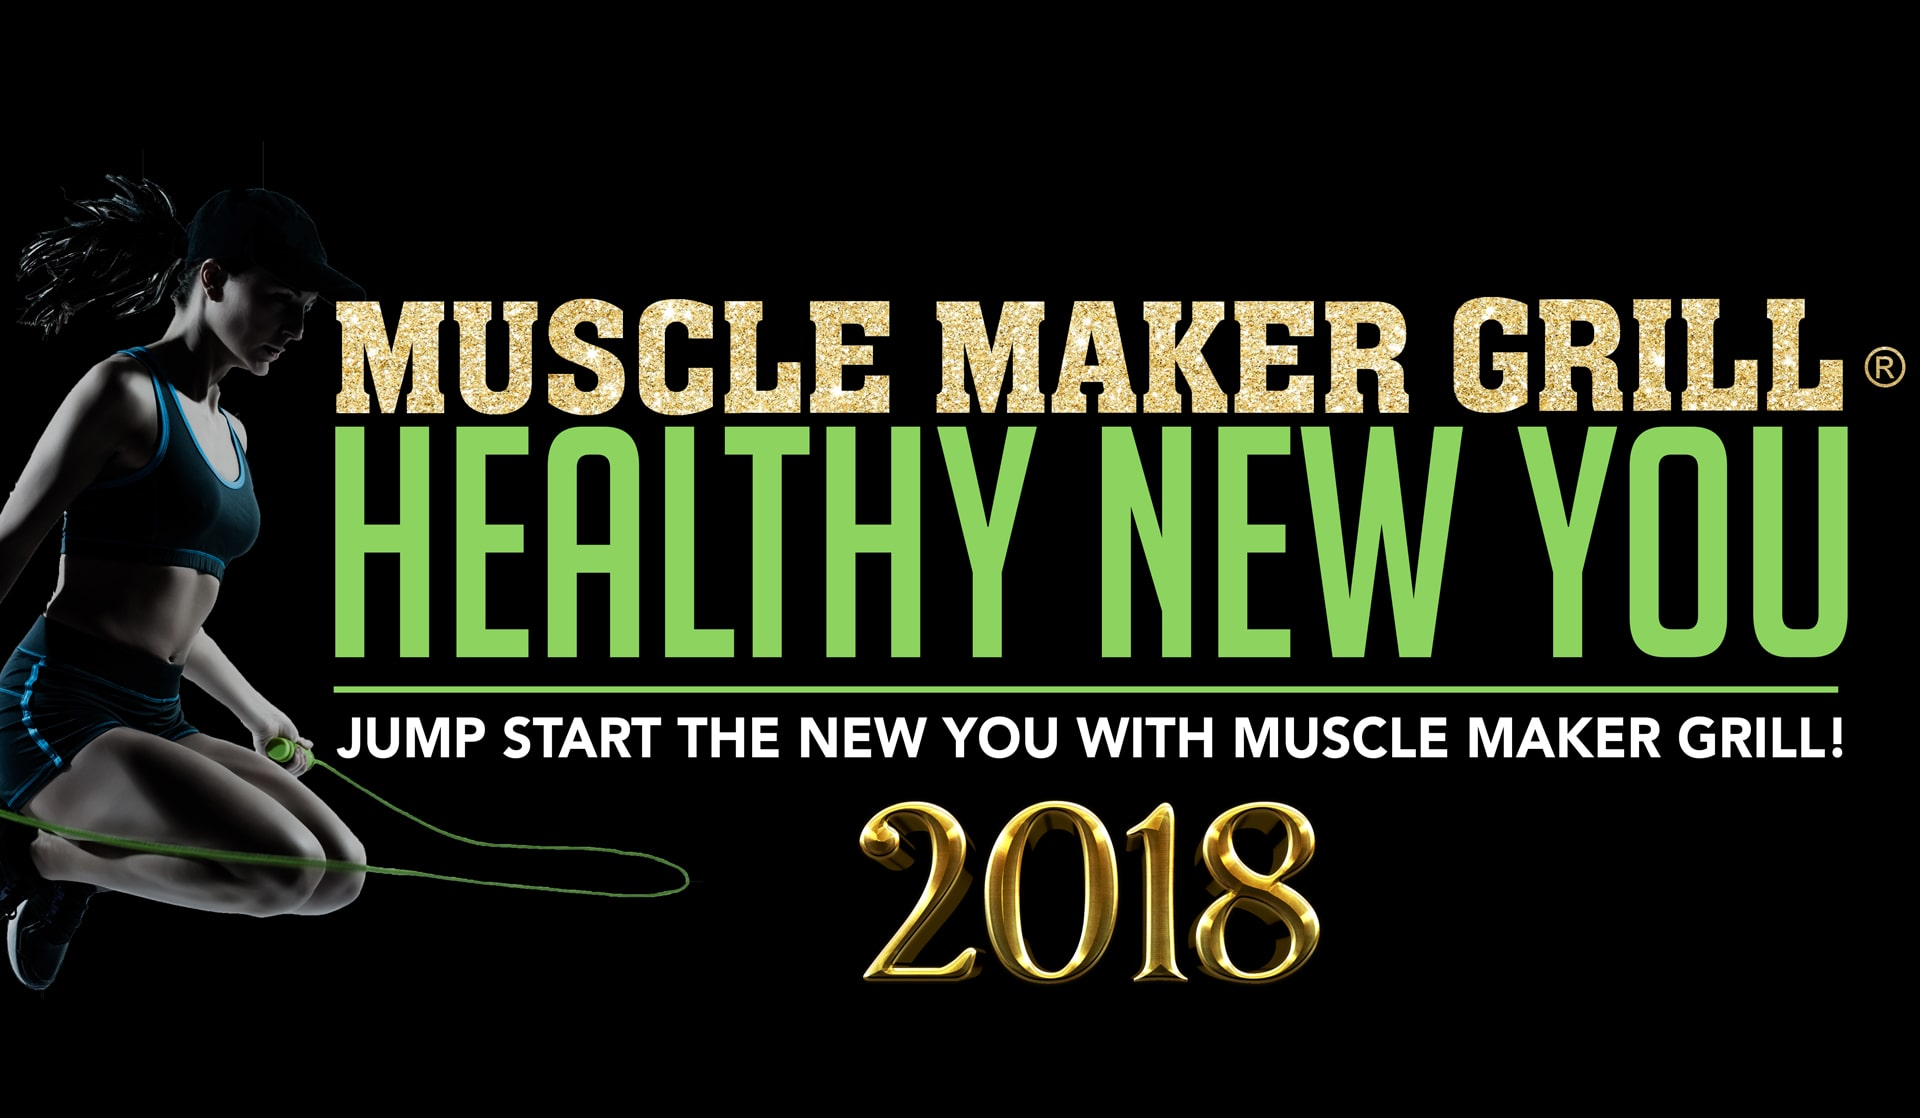 Home Muscle Maker Grill Great Food With Your Health in Mind